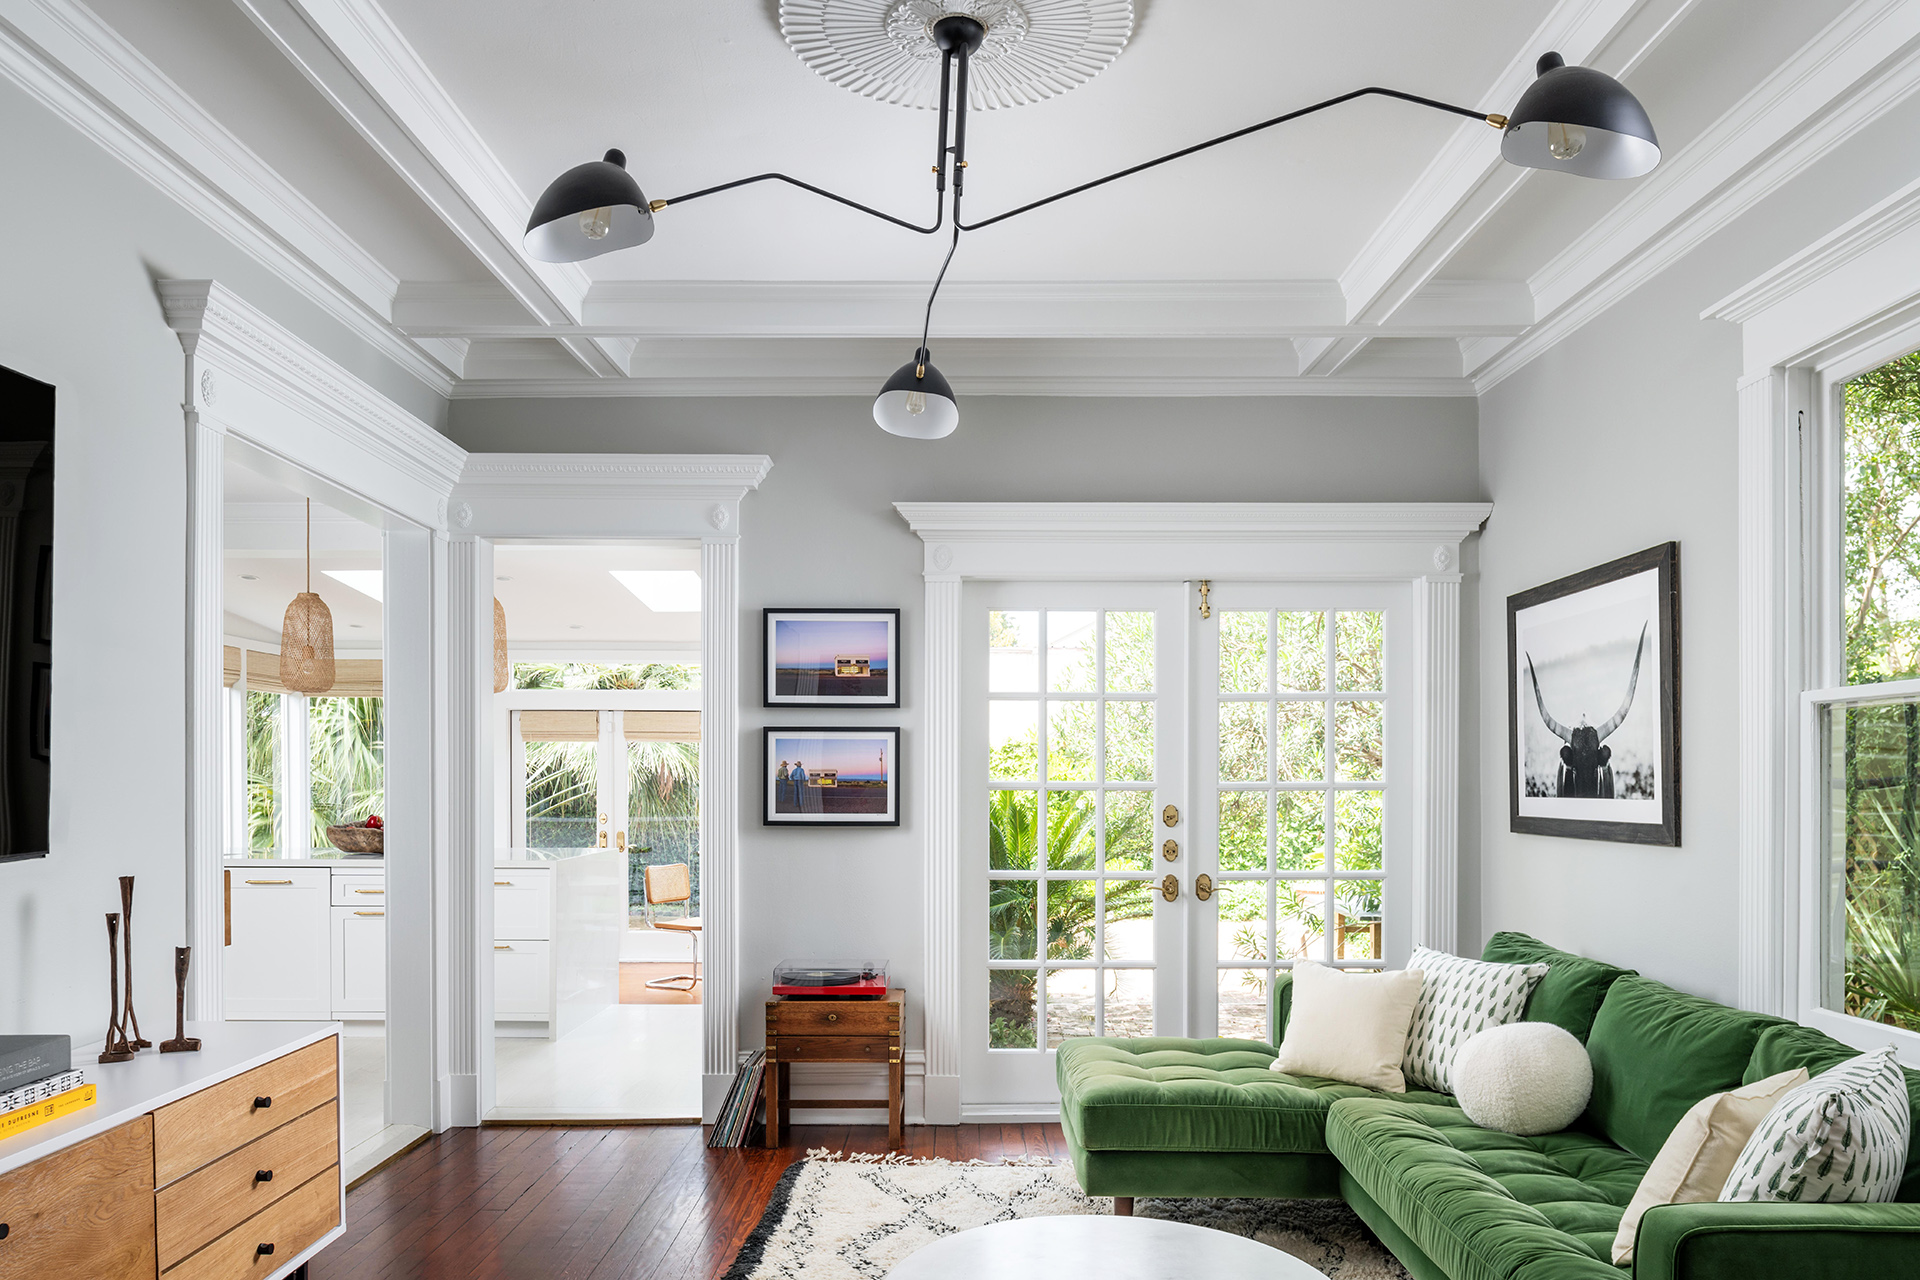 19 Budget-Friendly Home Renovation Ideas for Every Room in Your House |  Better Homes & Gardens